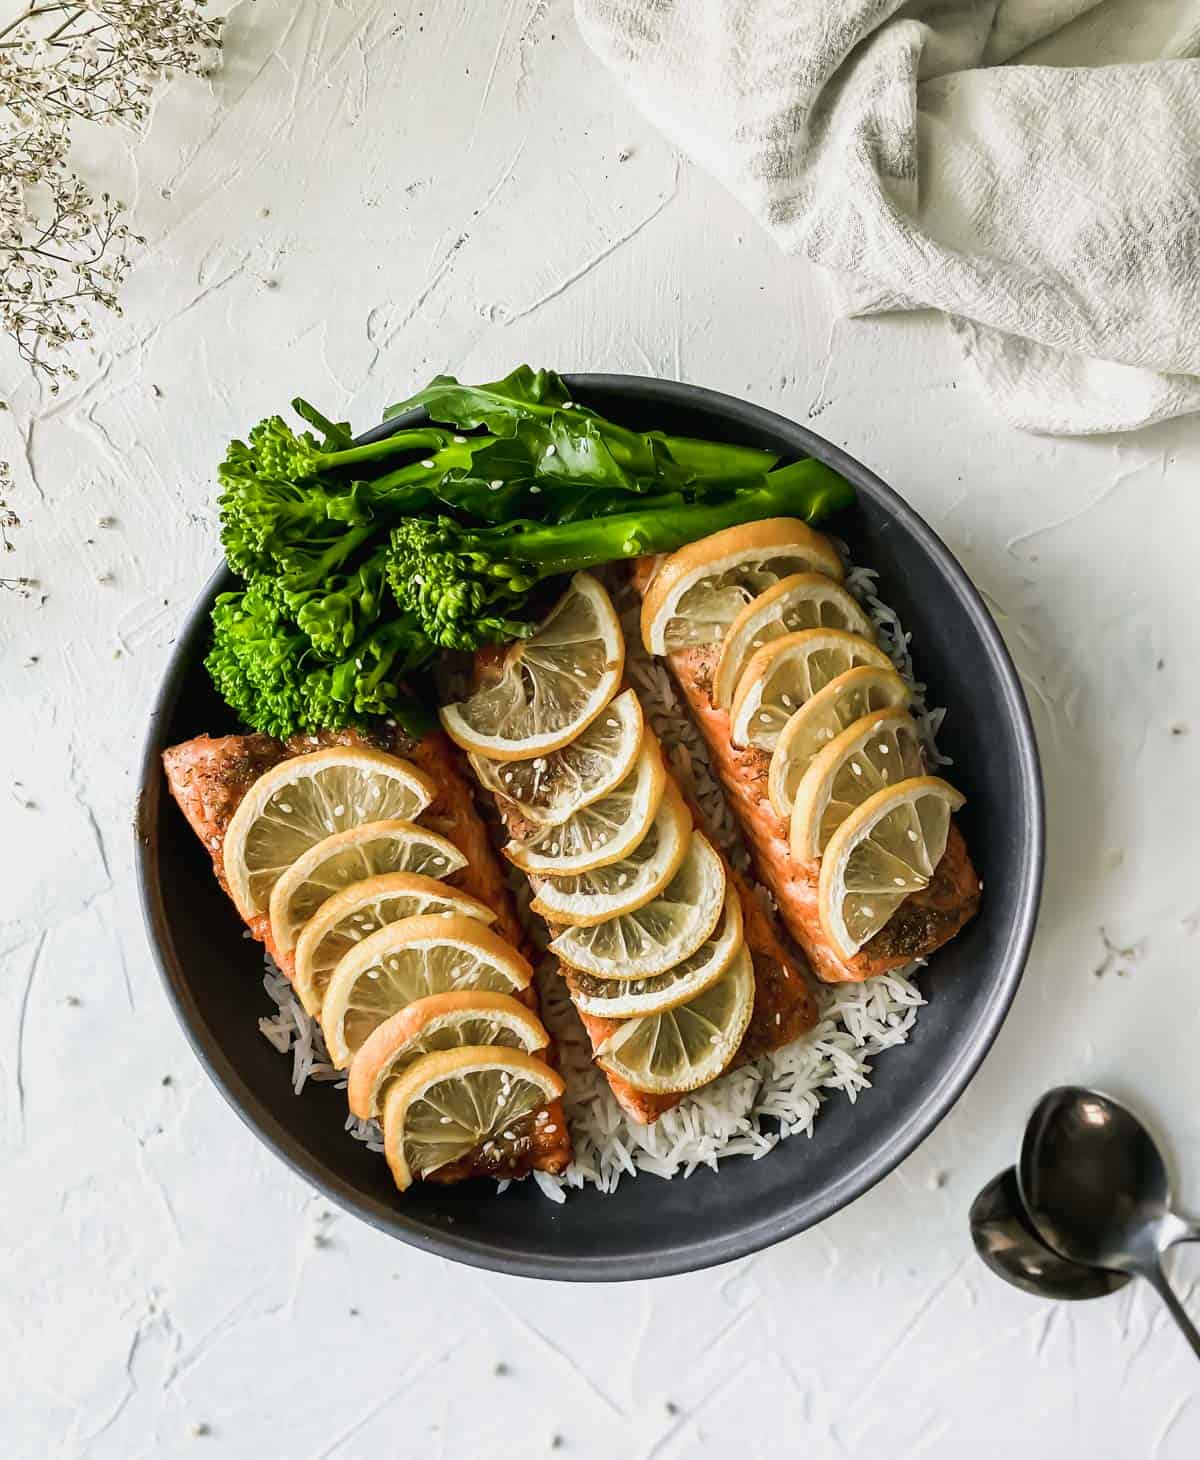 black bowl full of white rice, broccoli, and salmon with 2 spoons below it.